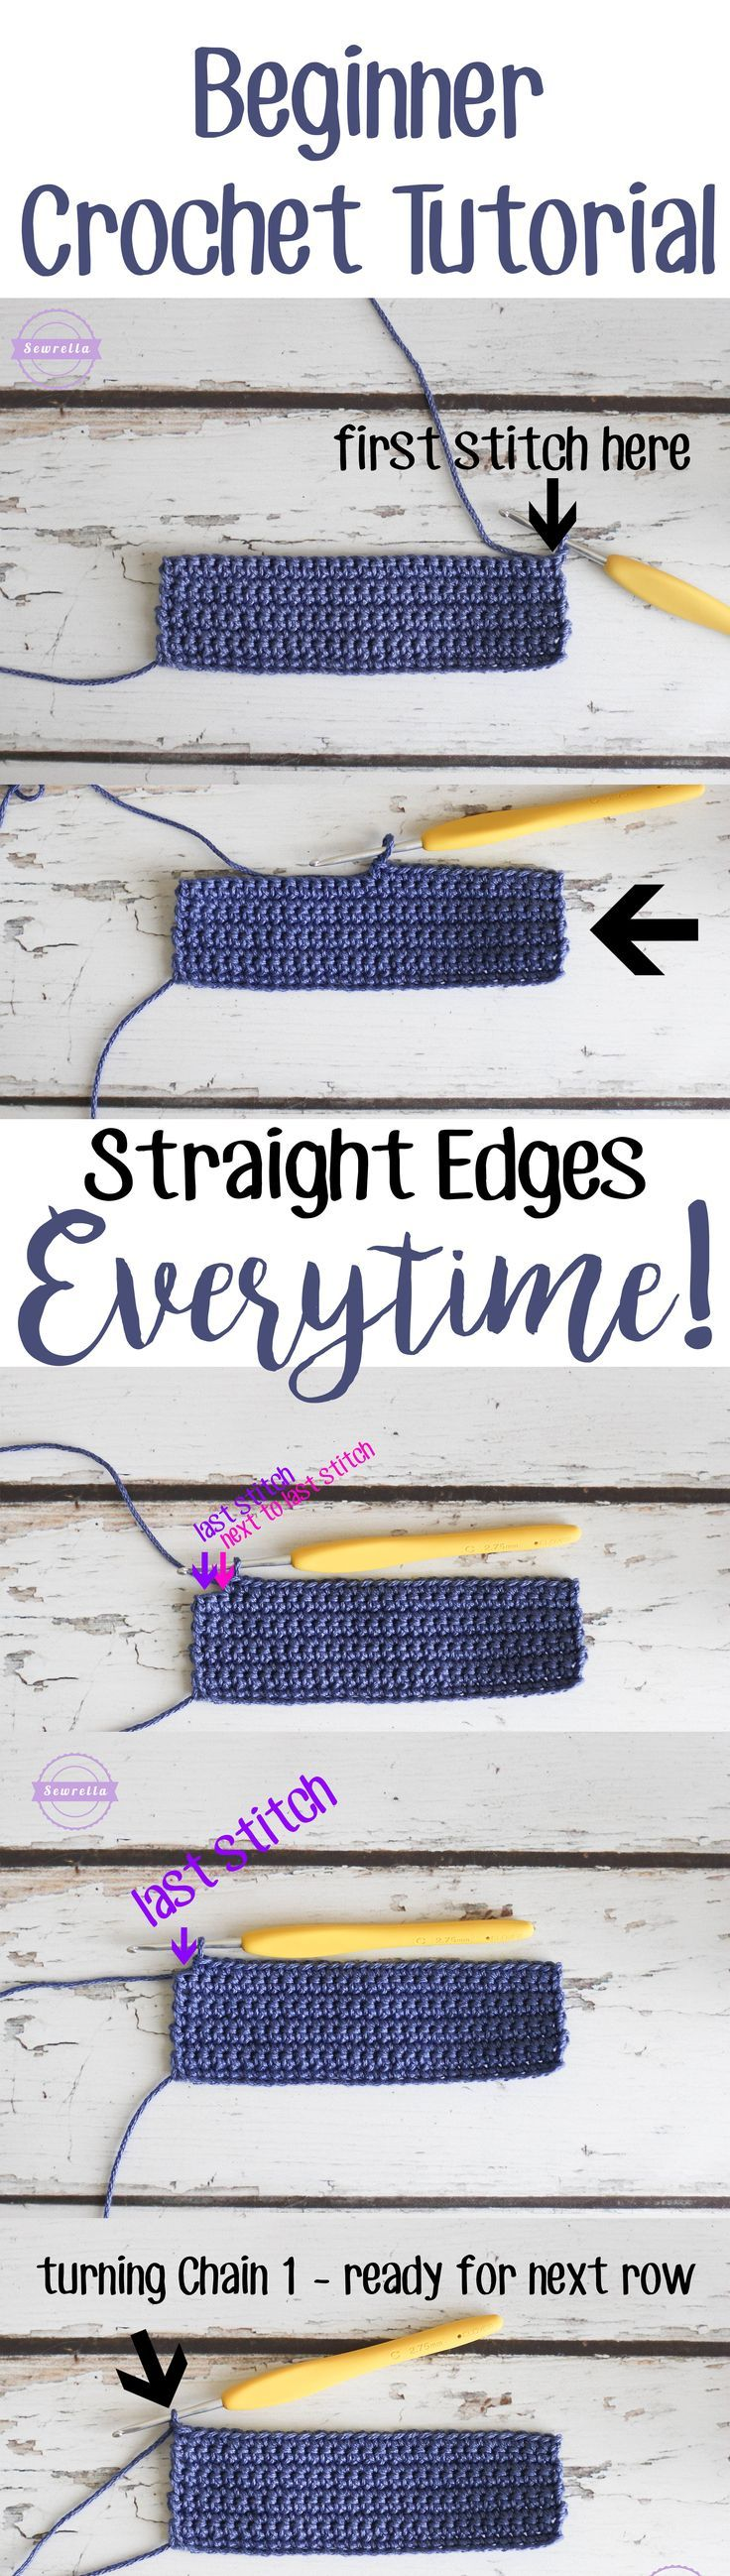 How to get straight edges every time | I'll have to reference this for my next project for sure!